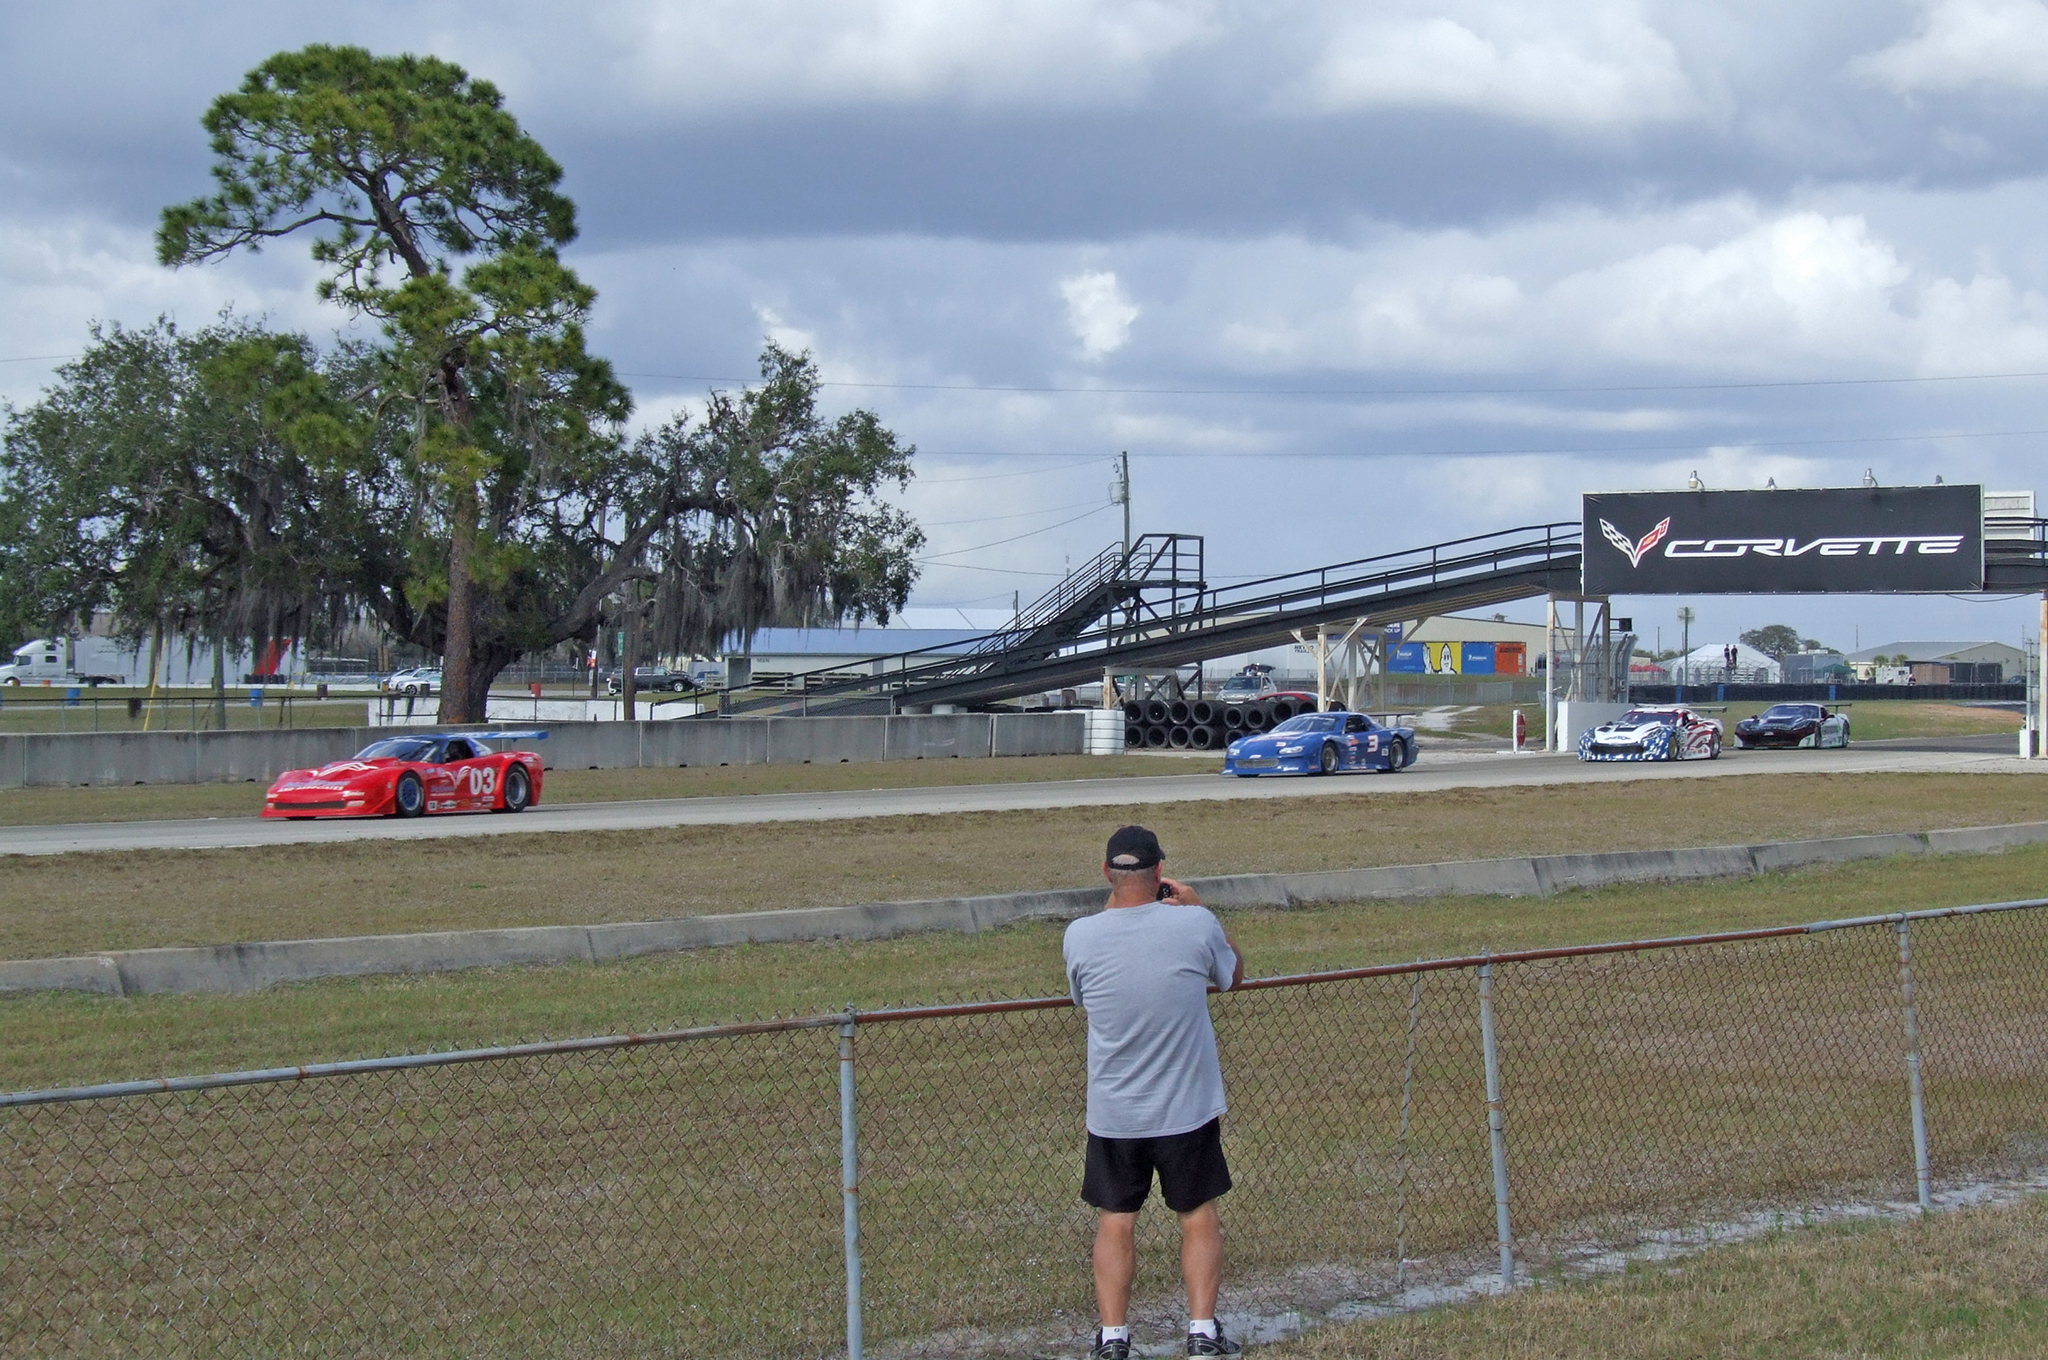 Sebring's 3.7-mile road course provides hundreds of spots for close-up viewing of the racing from every angle.